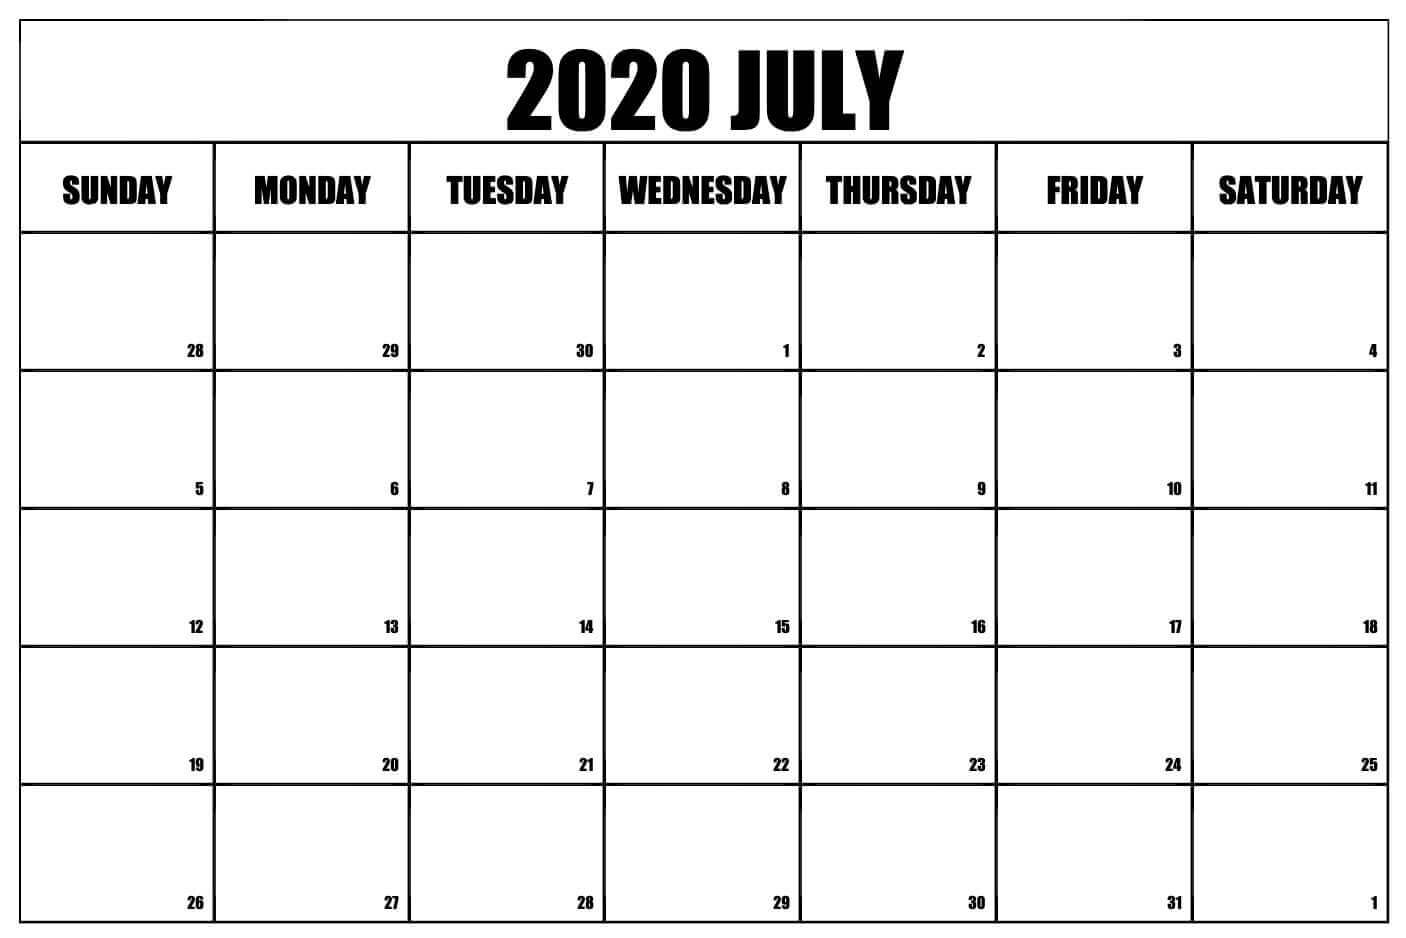 Free Printable July 2020 Calendar for Office